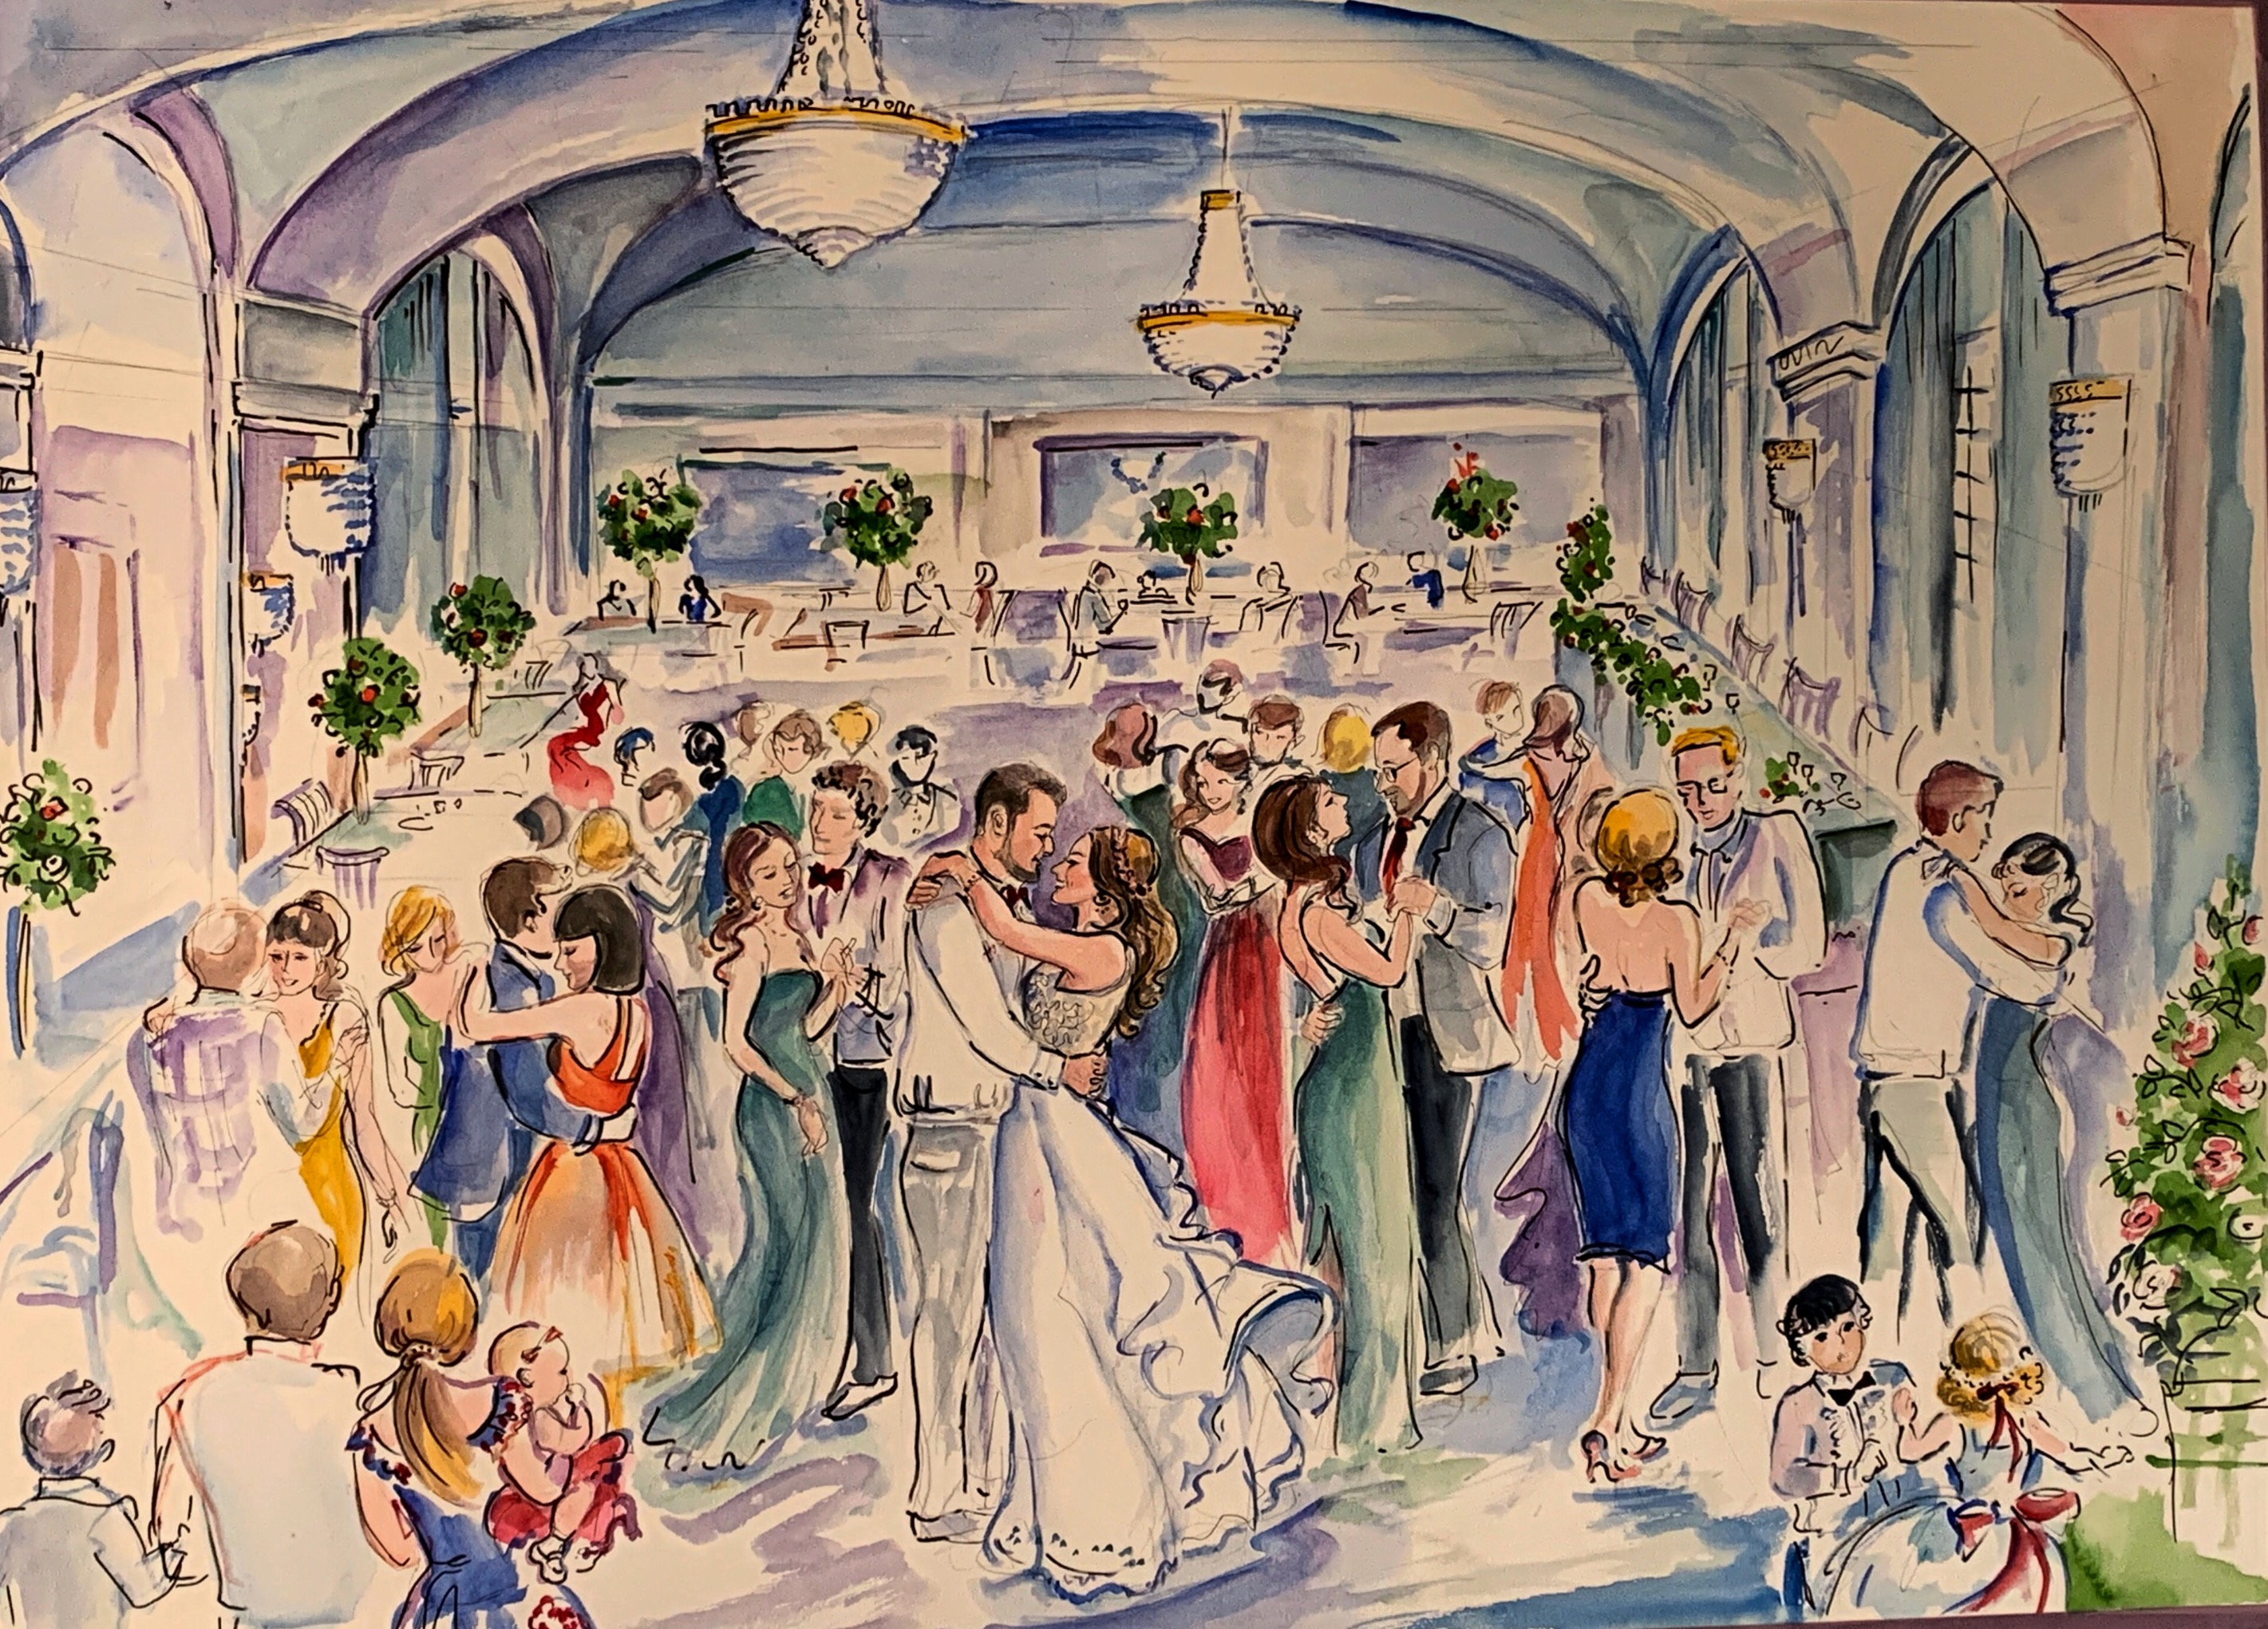 An westin wedding scene